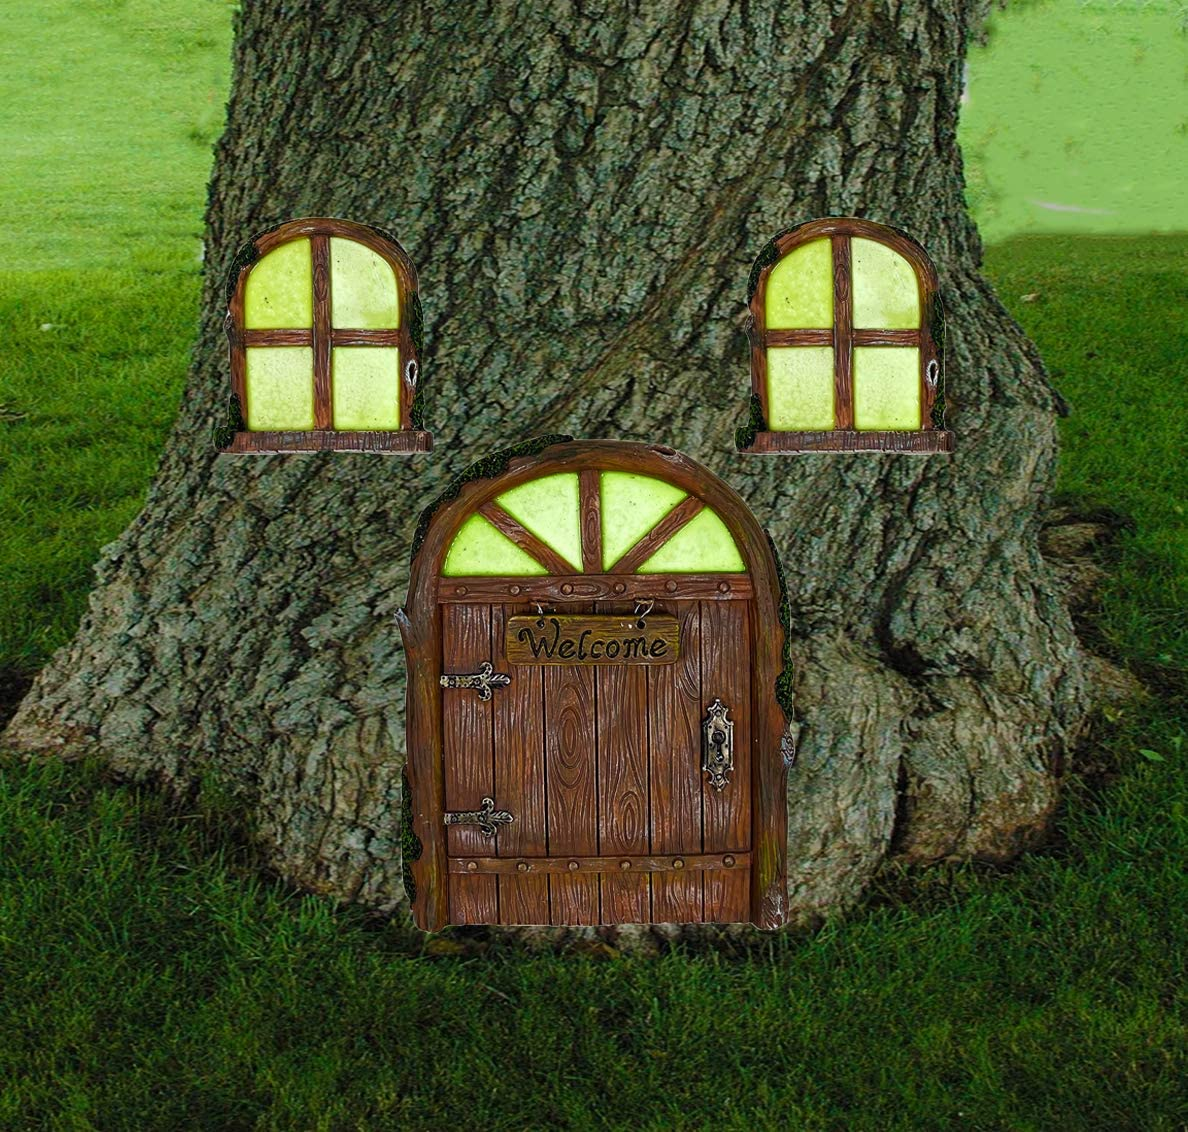 ALLADINBOX Miniature Fairy Gnome Home Window and Door with Welcome Sign for Trees Decoration, Glow in Dark Fairies Sleeping Door and Windows, Yard Art Garden Sculpture Lawn Ornament Decoration